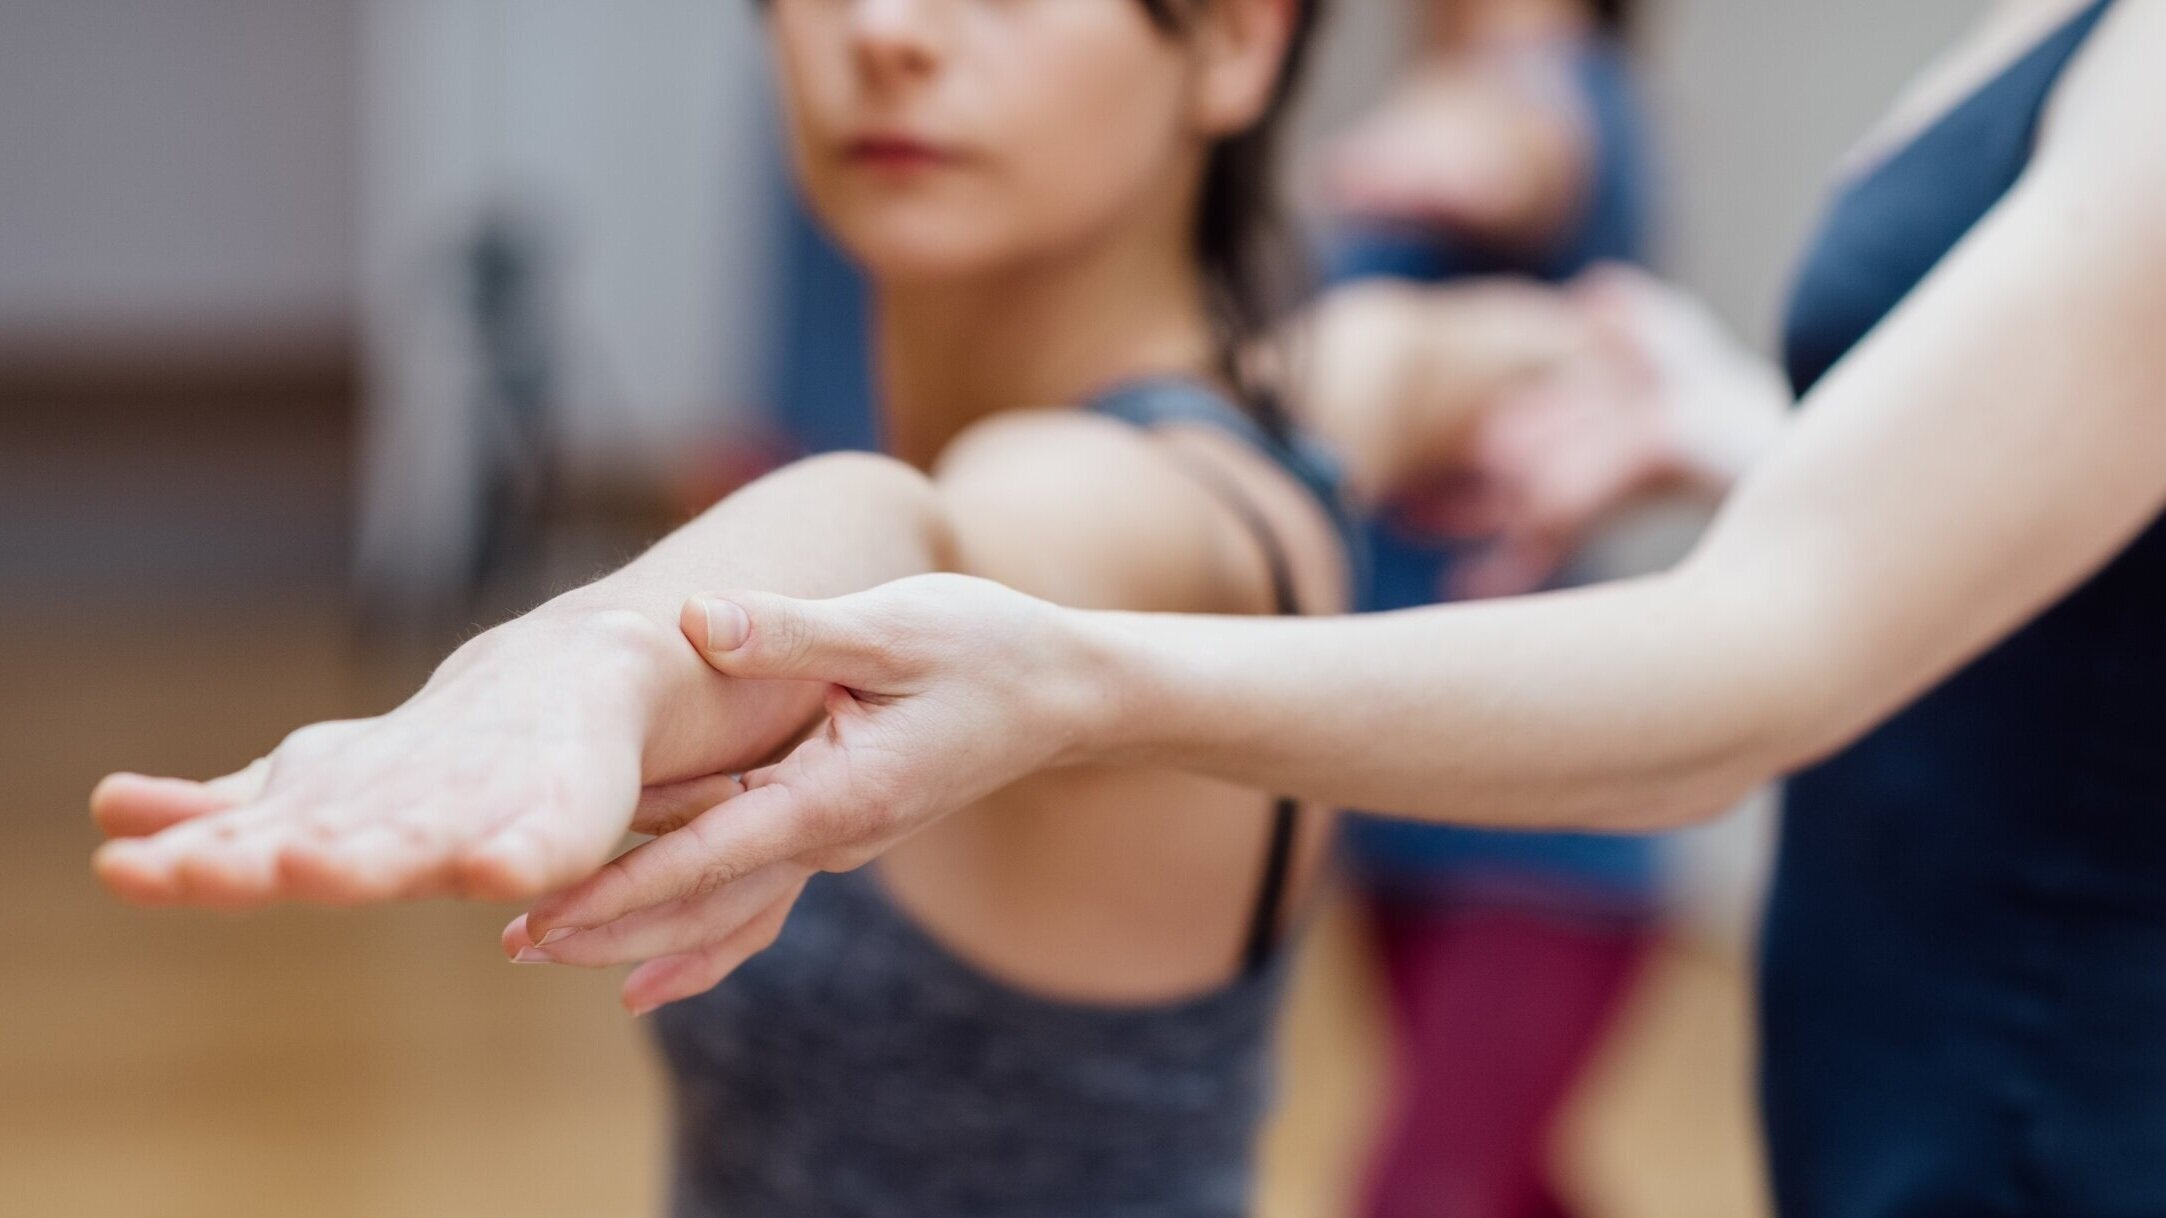 Private Yoga - One-on-one and private groups (English and Portuguese)